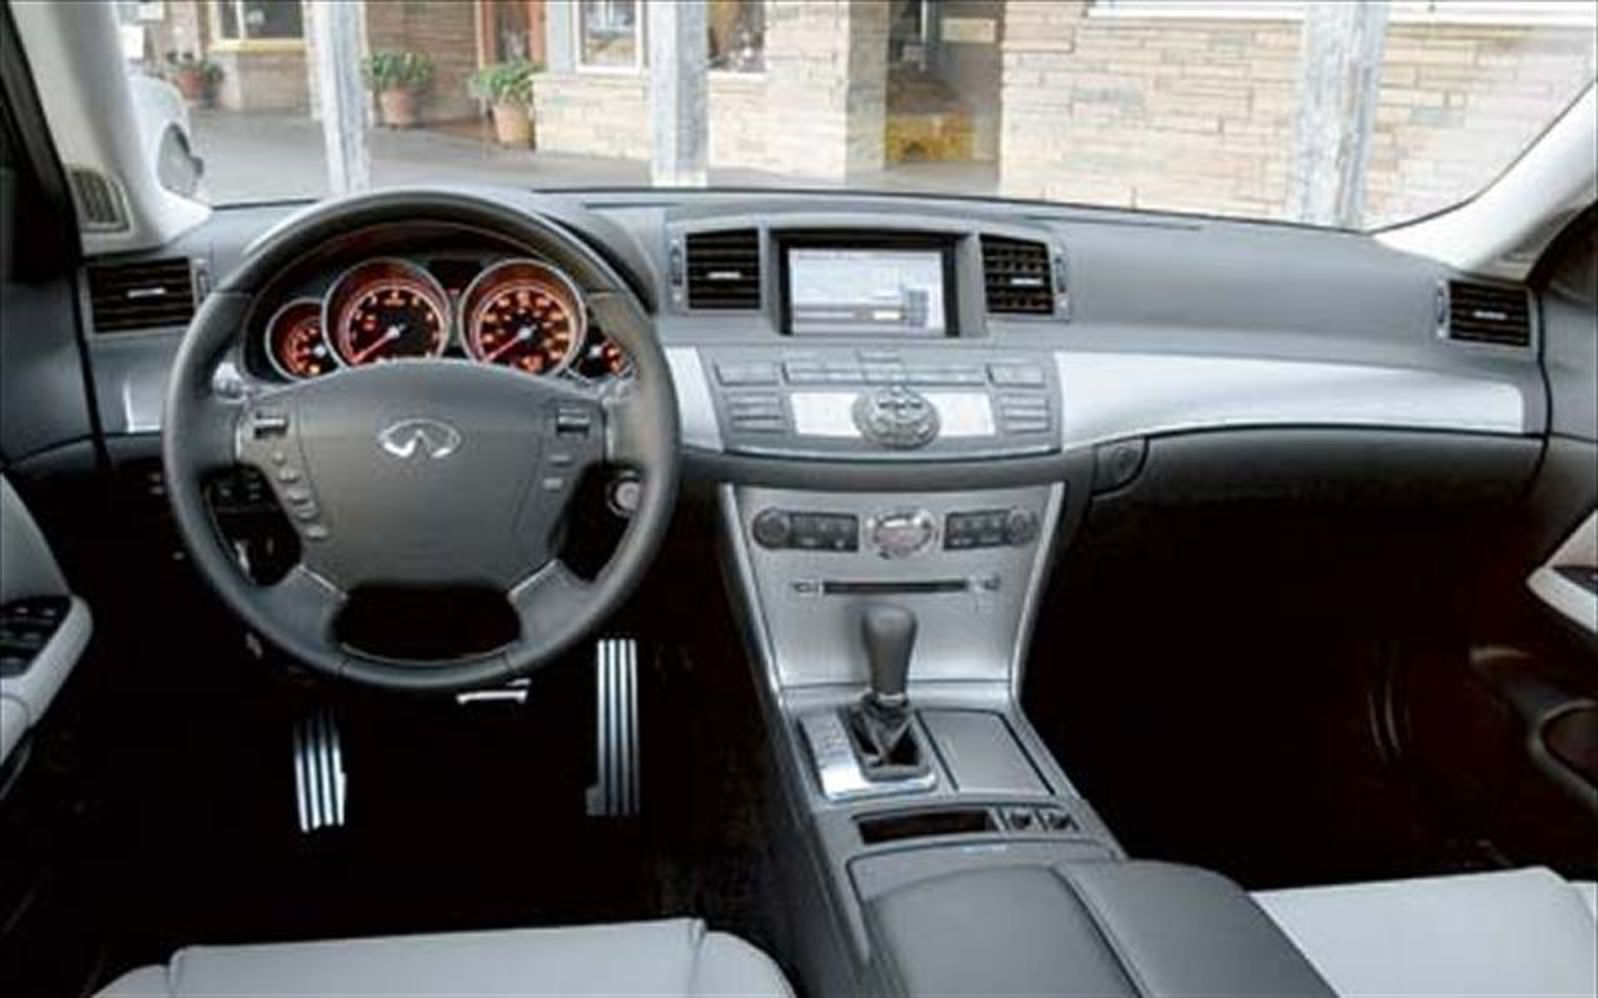 2001 infiniti m45 interior image collections hd cars wallpaper 2001 infiniti m45 interior choice image hd cars wallpaper 2001 infiniti m45 interior gallery hd cars wallpaper 2001 infiniti m45 interior choice image hd vanachro Choice Image